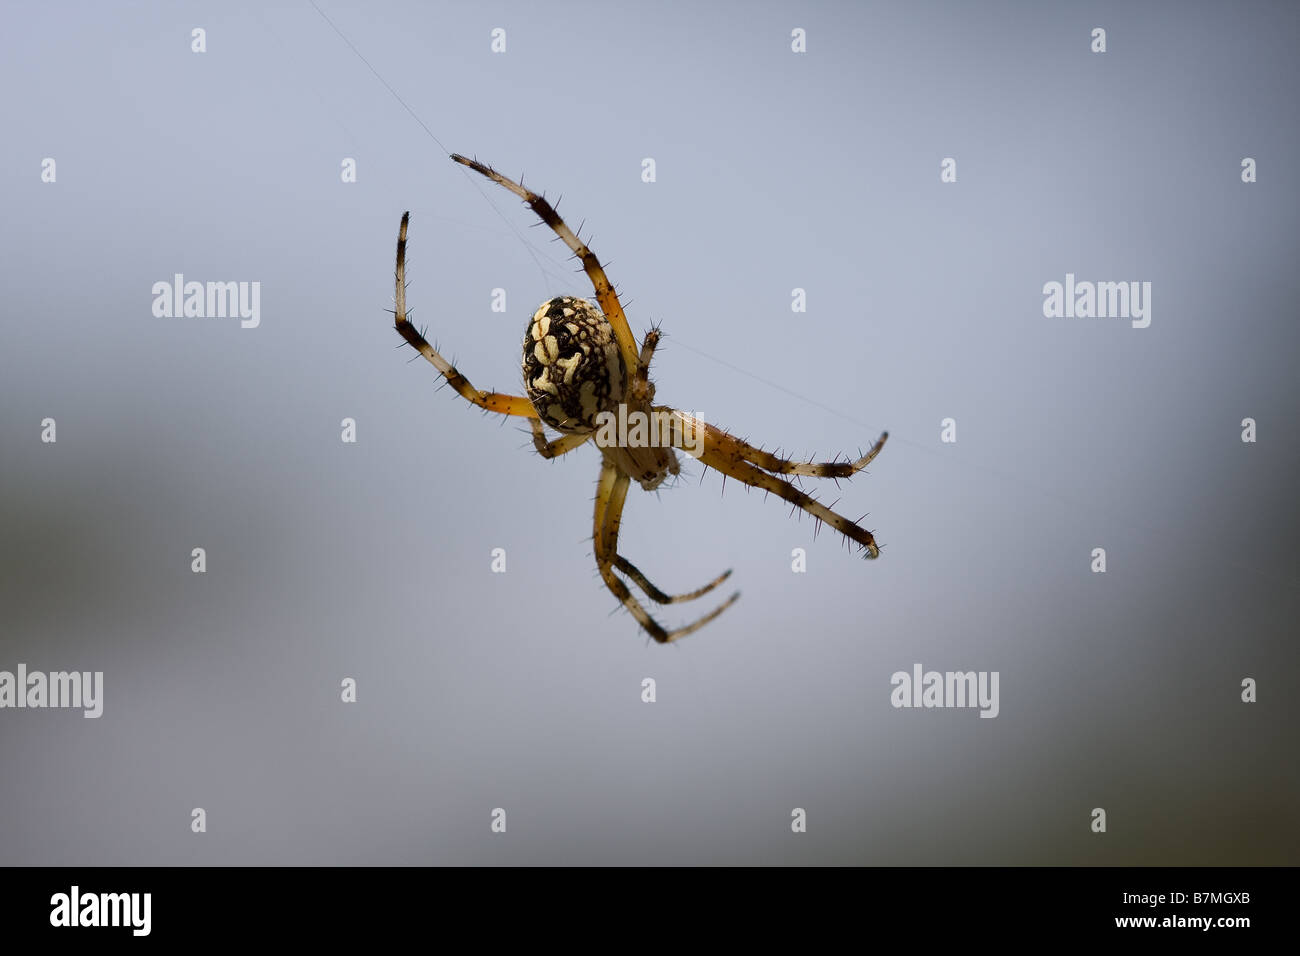 Small yellow and black Western Spotted Orbweaver spider on web. - Stock Image